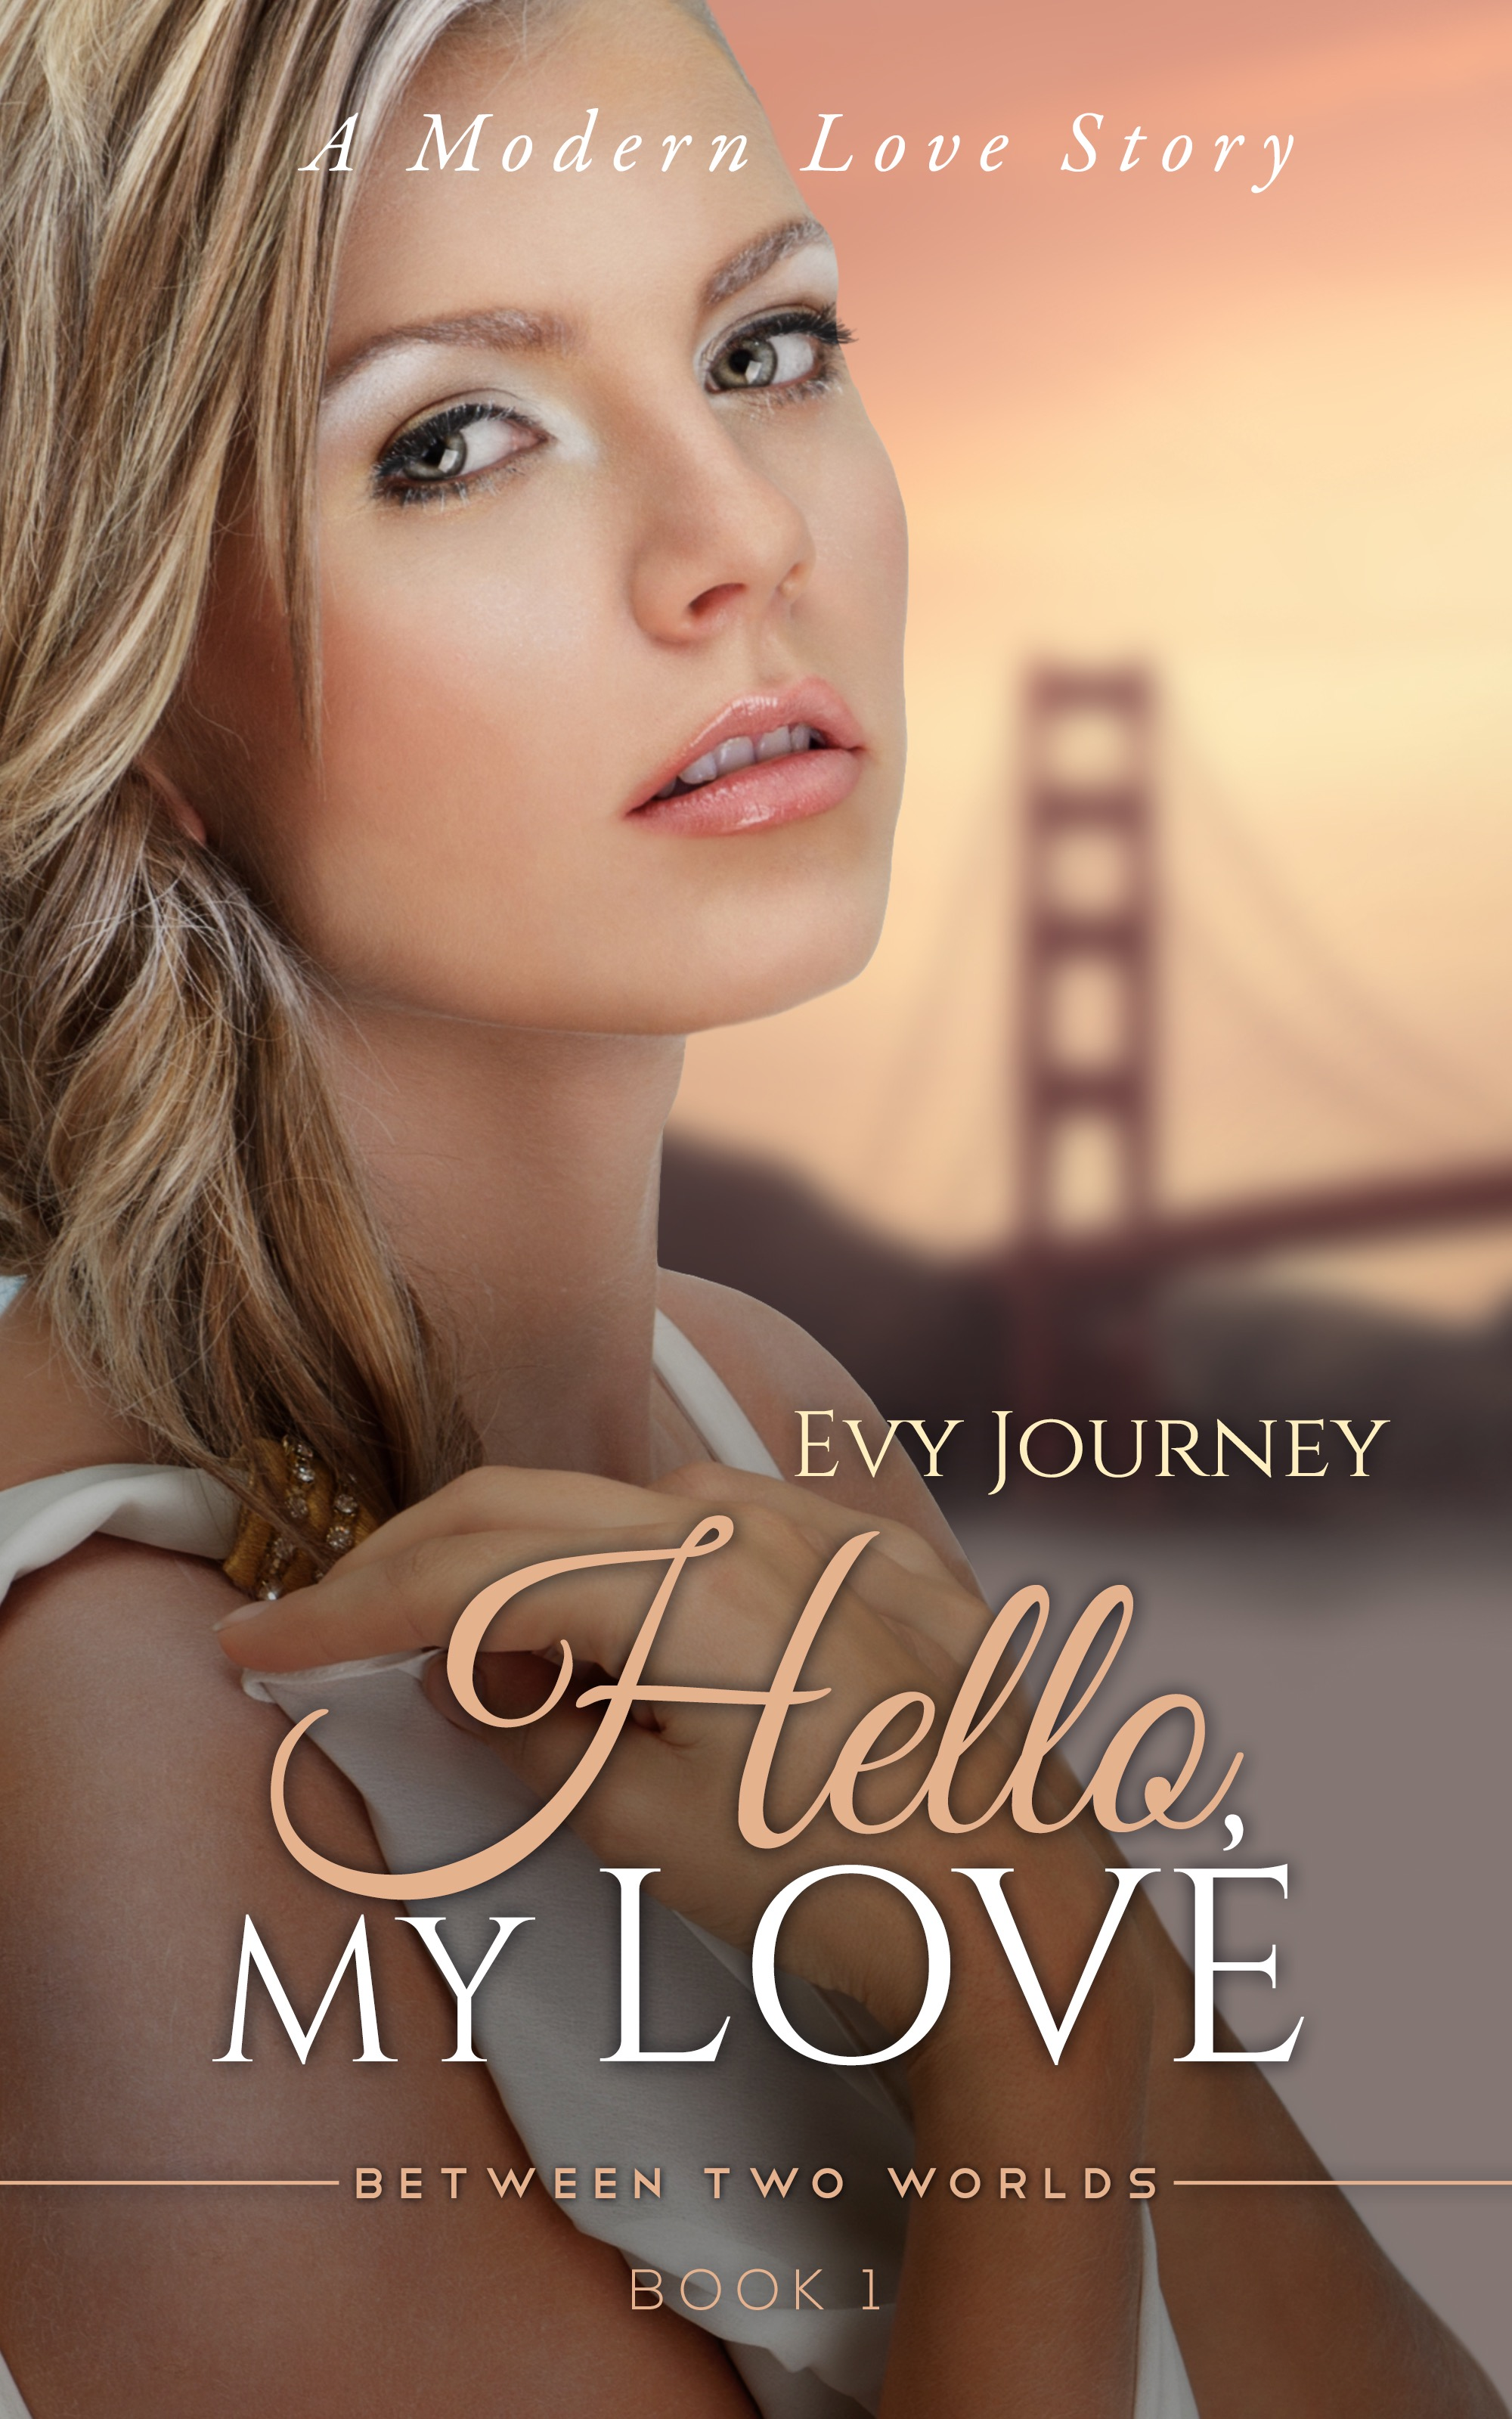 Hello, My Love onlinebookclub.org Review: 4 out of 4